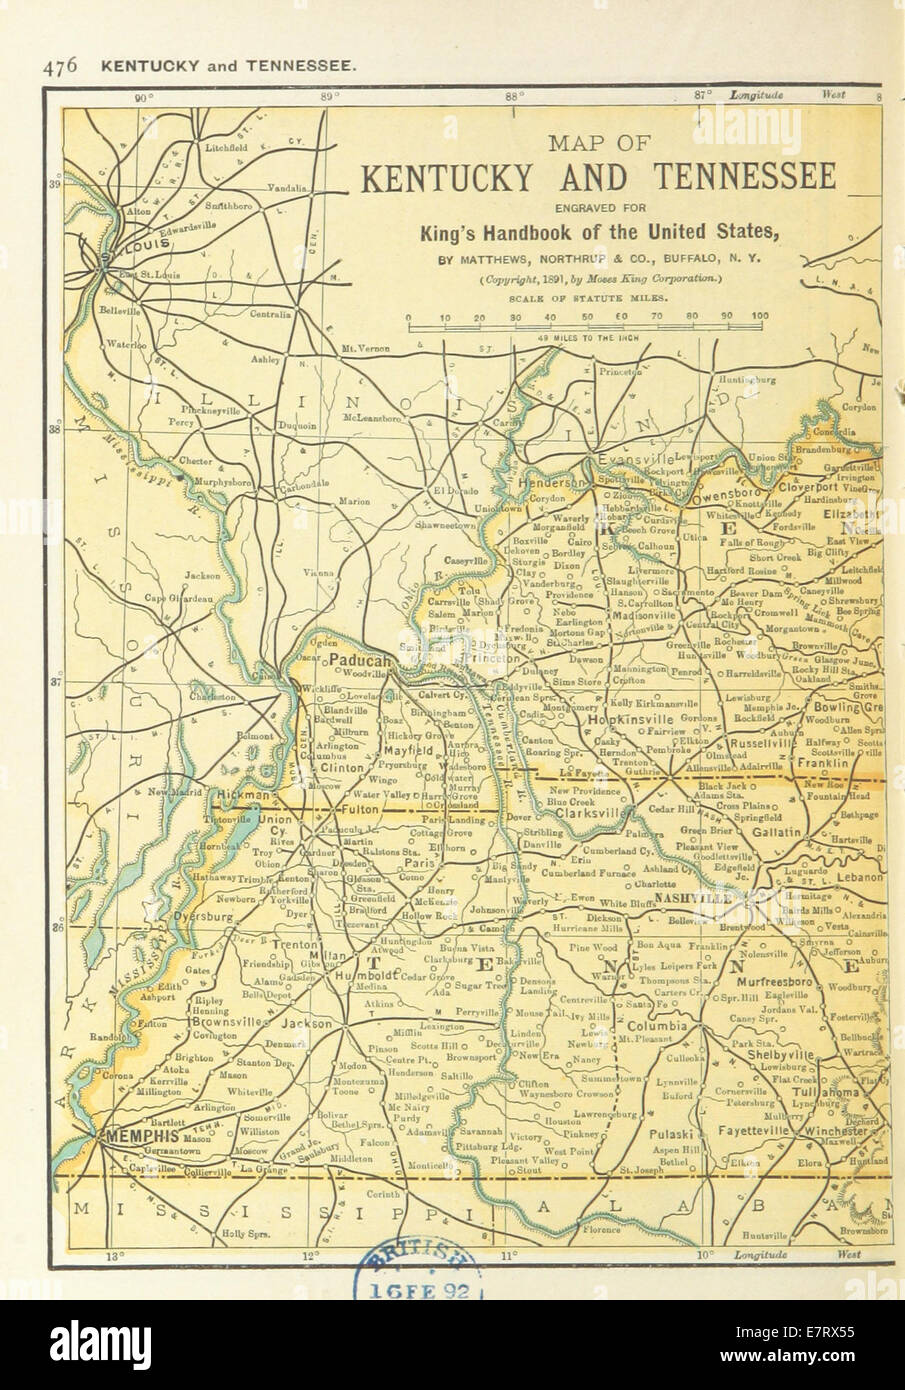 Us Maps 1891 P478 Map Kentucky Tennessee Stock Photos Us Maps 1891